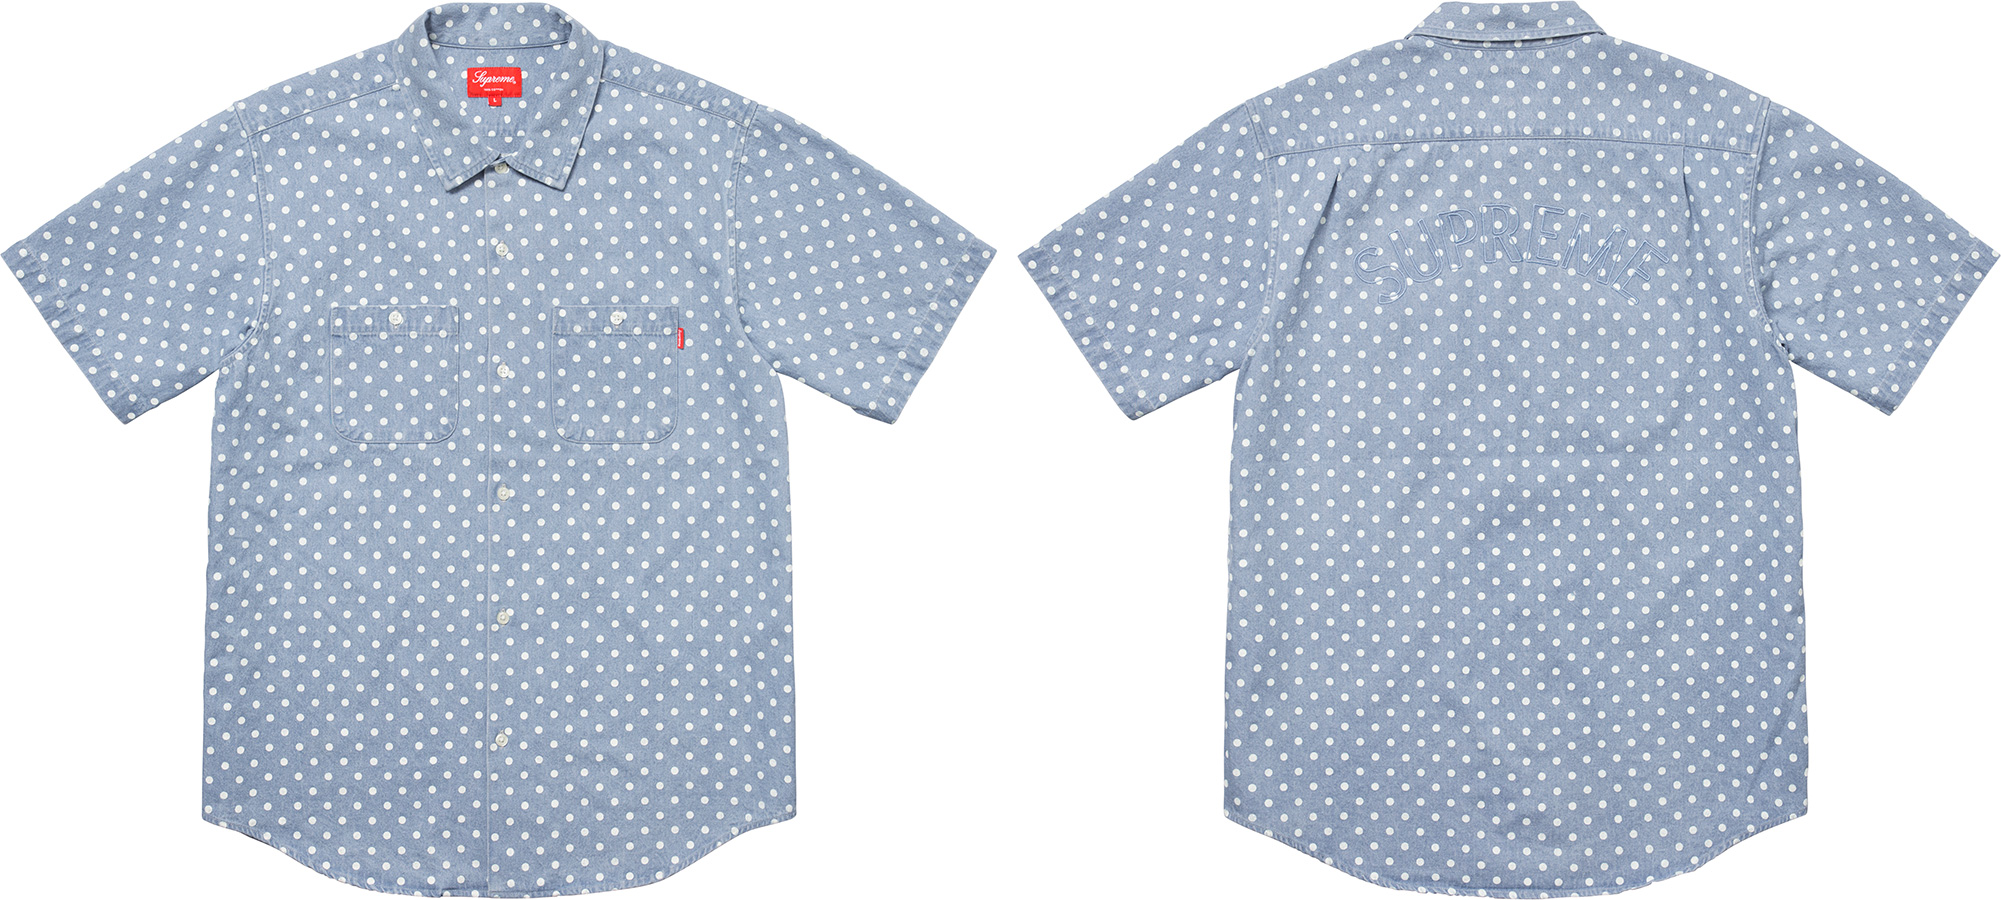 supreme-18ss-spring-summer-polka-dot-denim-shirt